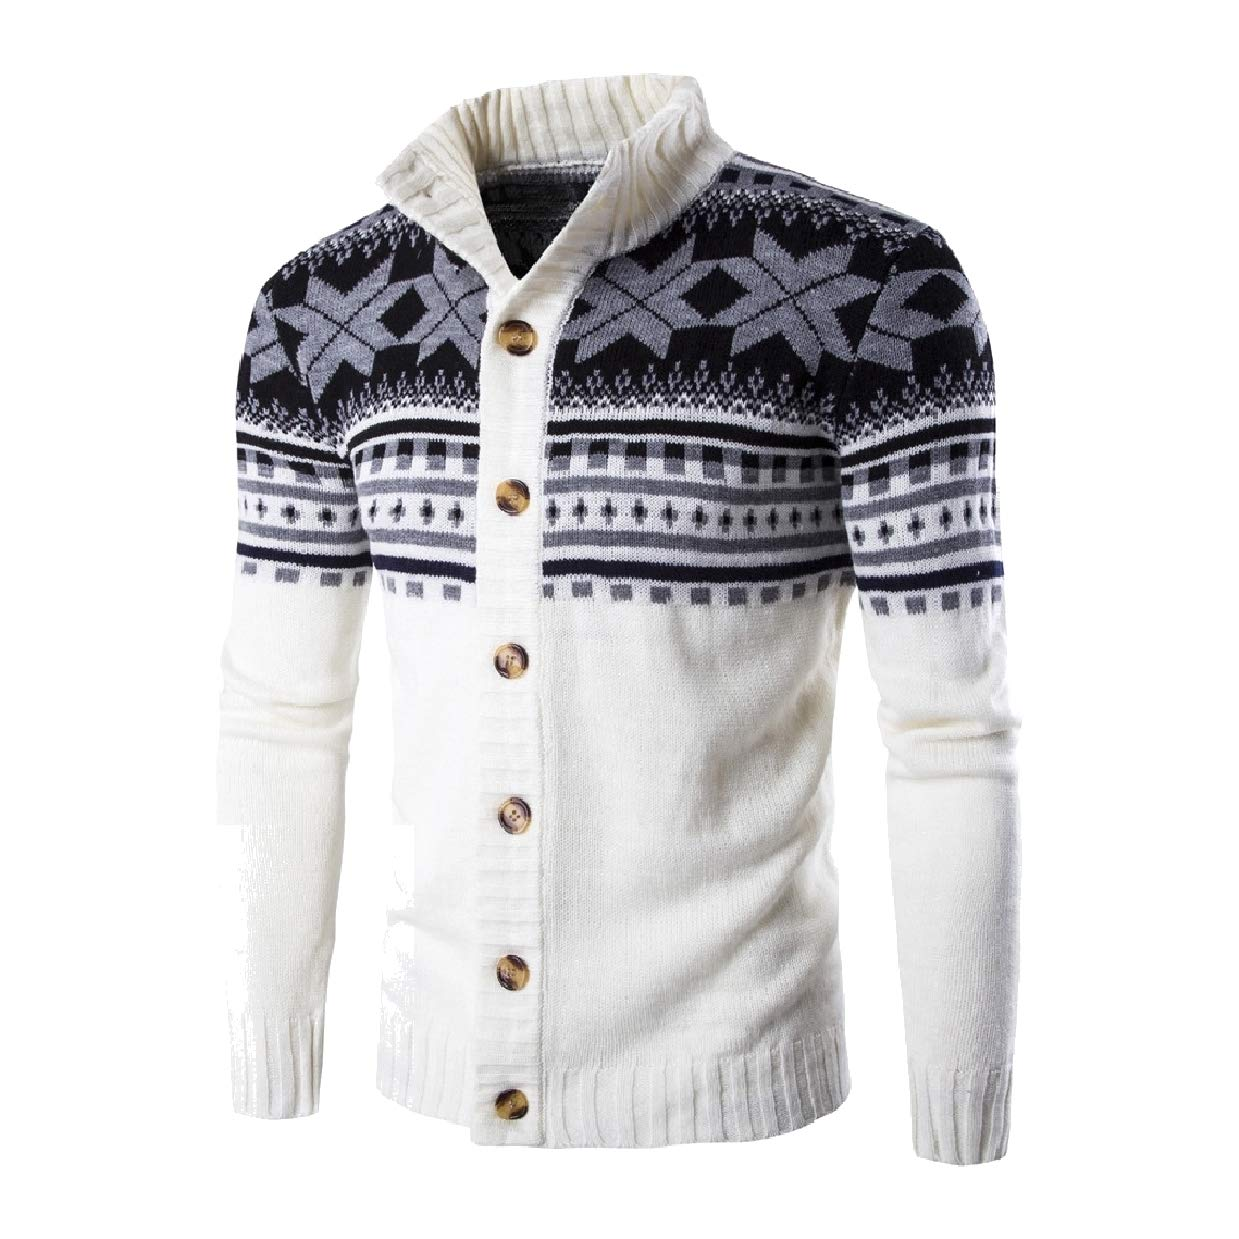 Abetteric Mens Christmas Knitted Button Down Classic Stand Collar Cardigan